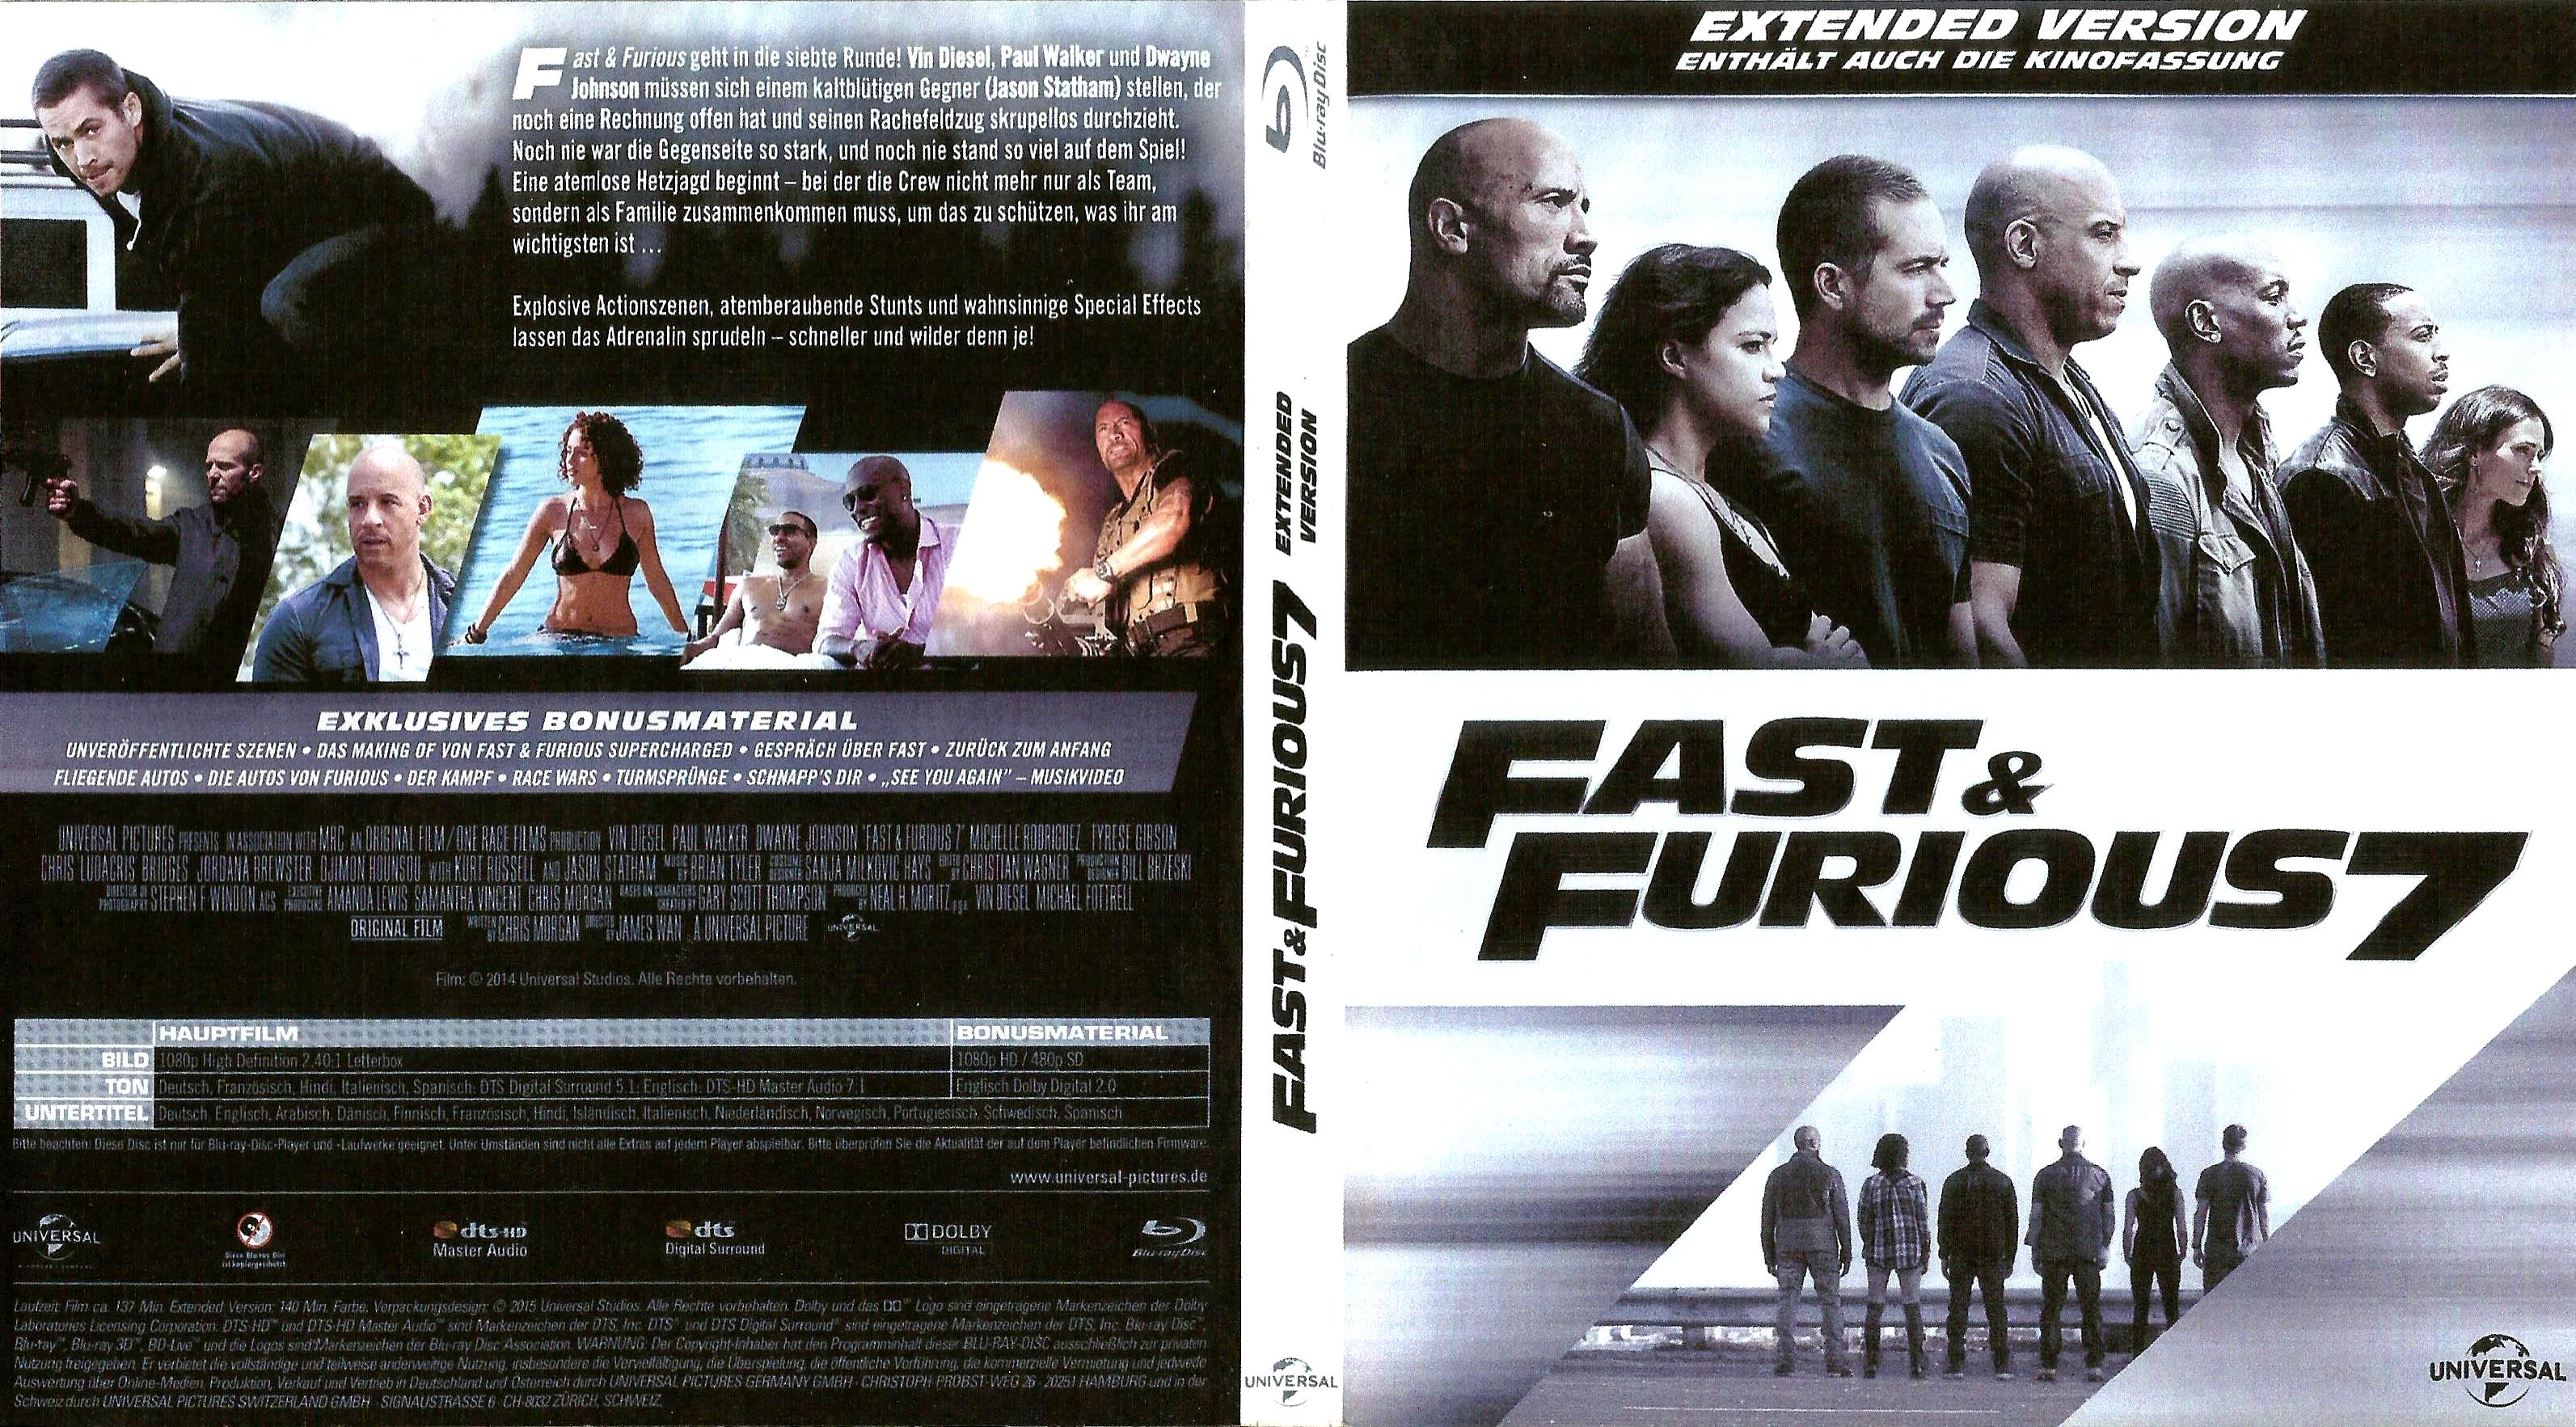 fast furious 7 dvd covers cover century over 500 000 album art